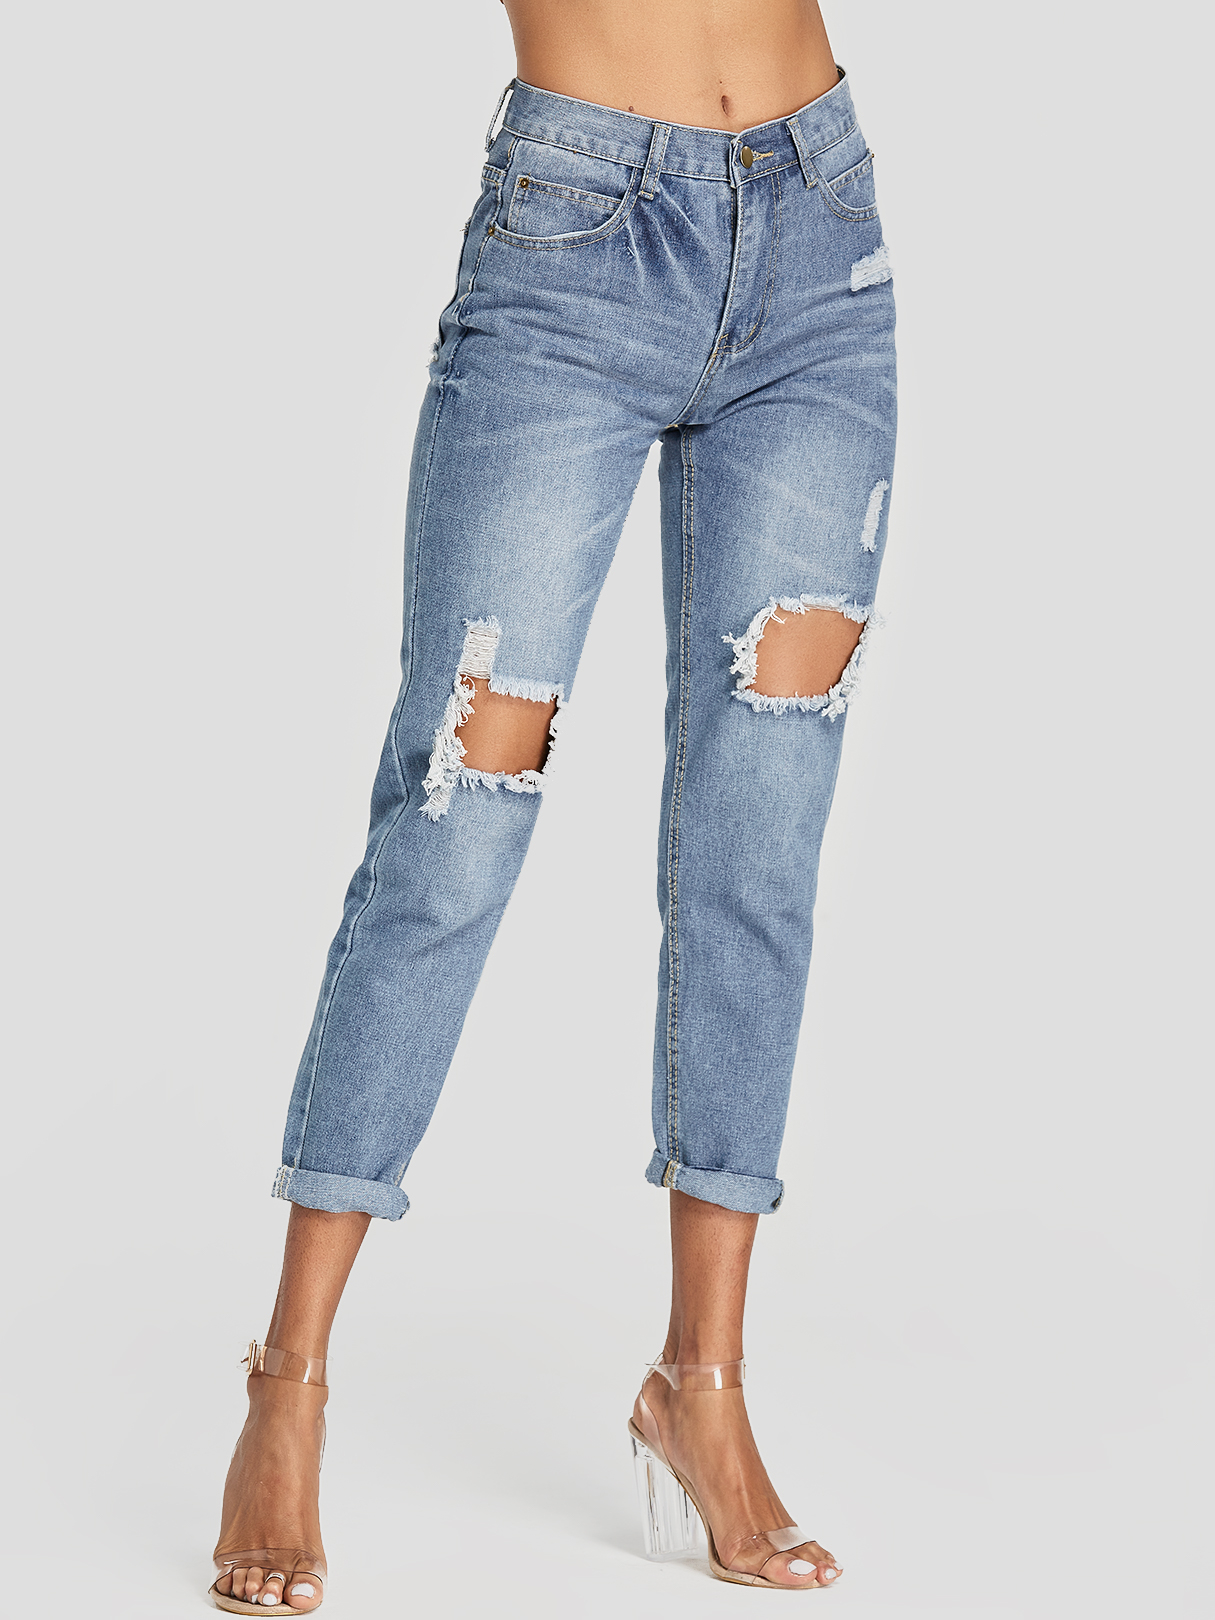 Blue Random Ripped Details Middle-Waisted Jeans